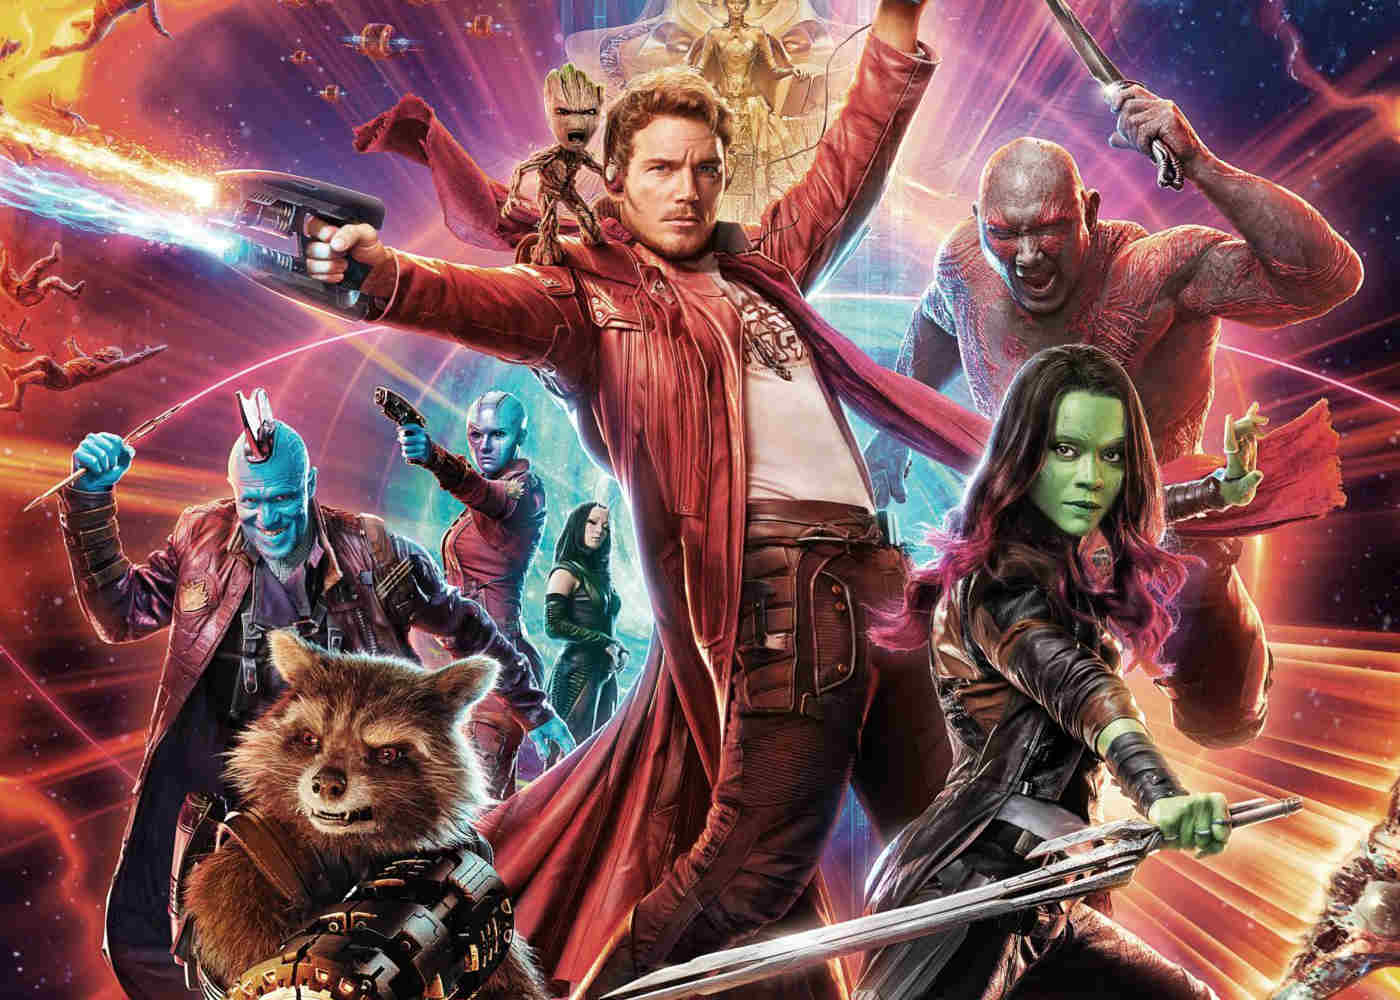 James Gunn: The Future of The Guardians of The Galaxy